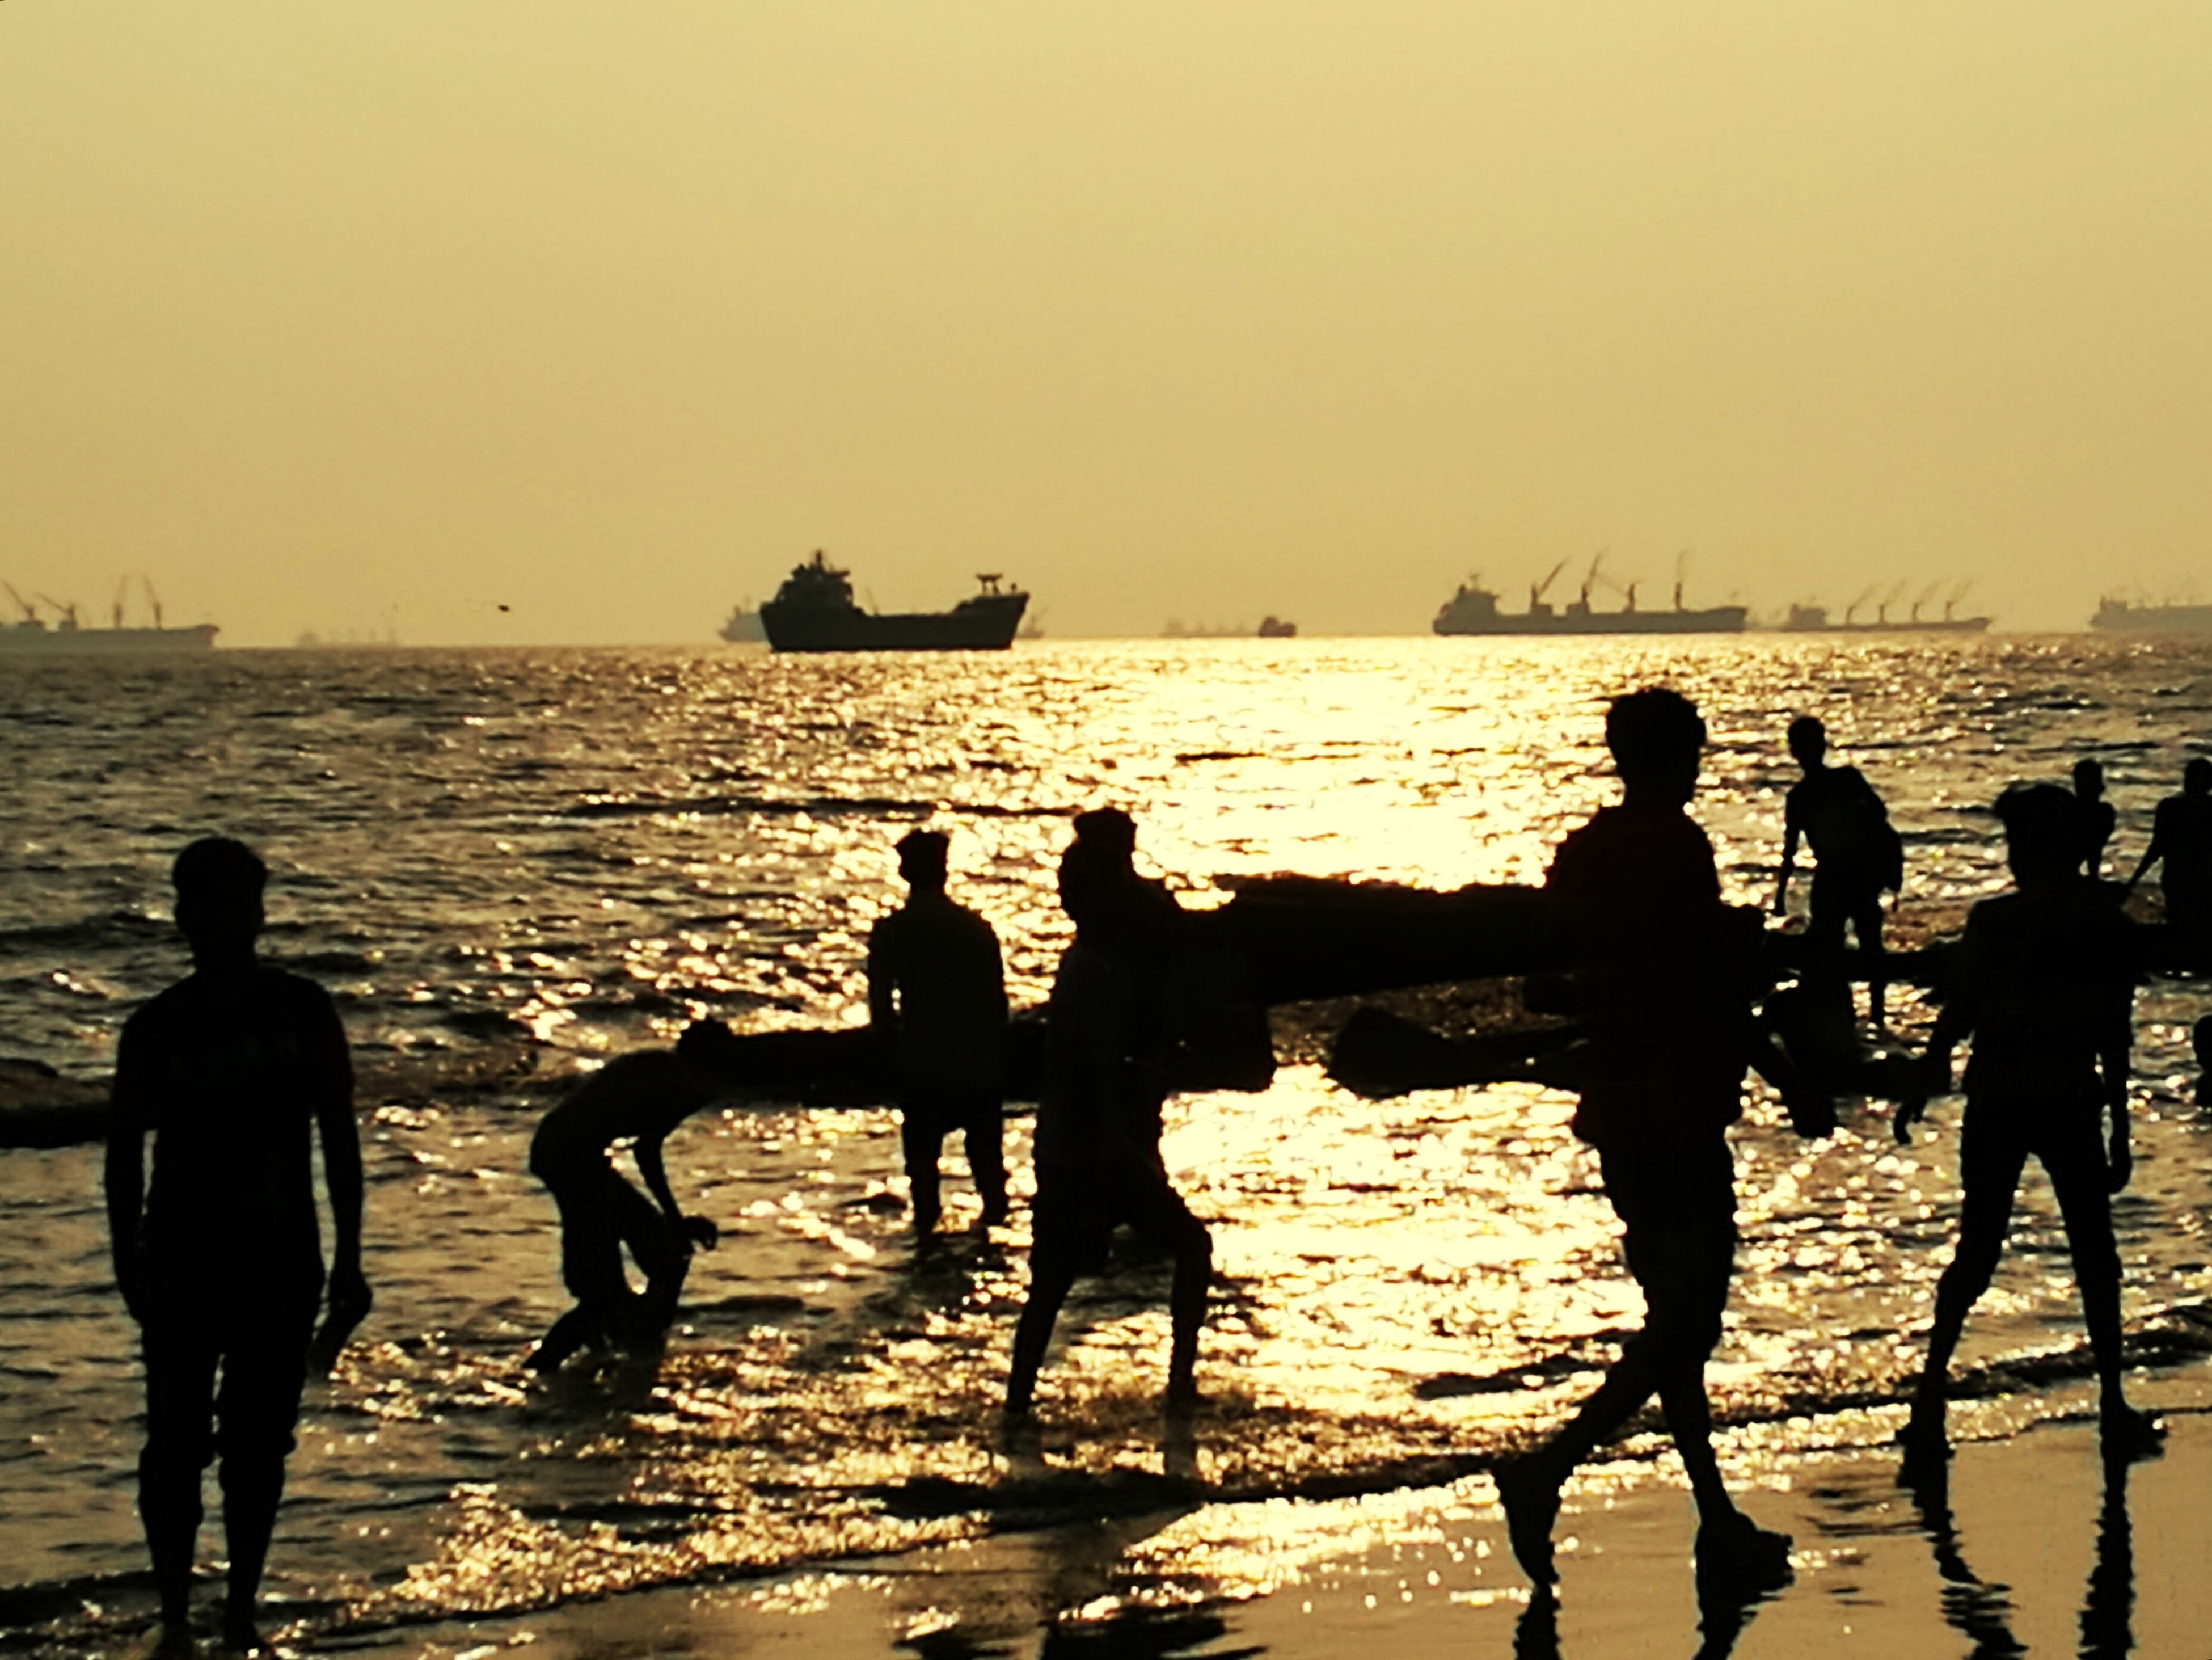 sea, water, silhouette, sunset, horizon over water, beach, sunlight, standing, nature, men, sky, real people, outdoors, scenics, medium group of people, beauty in nature, leisure activity, togetherness, cooperation, nautical vessel, lifestyles, teamwork, sport, vacations, wave, clear sky, day, people